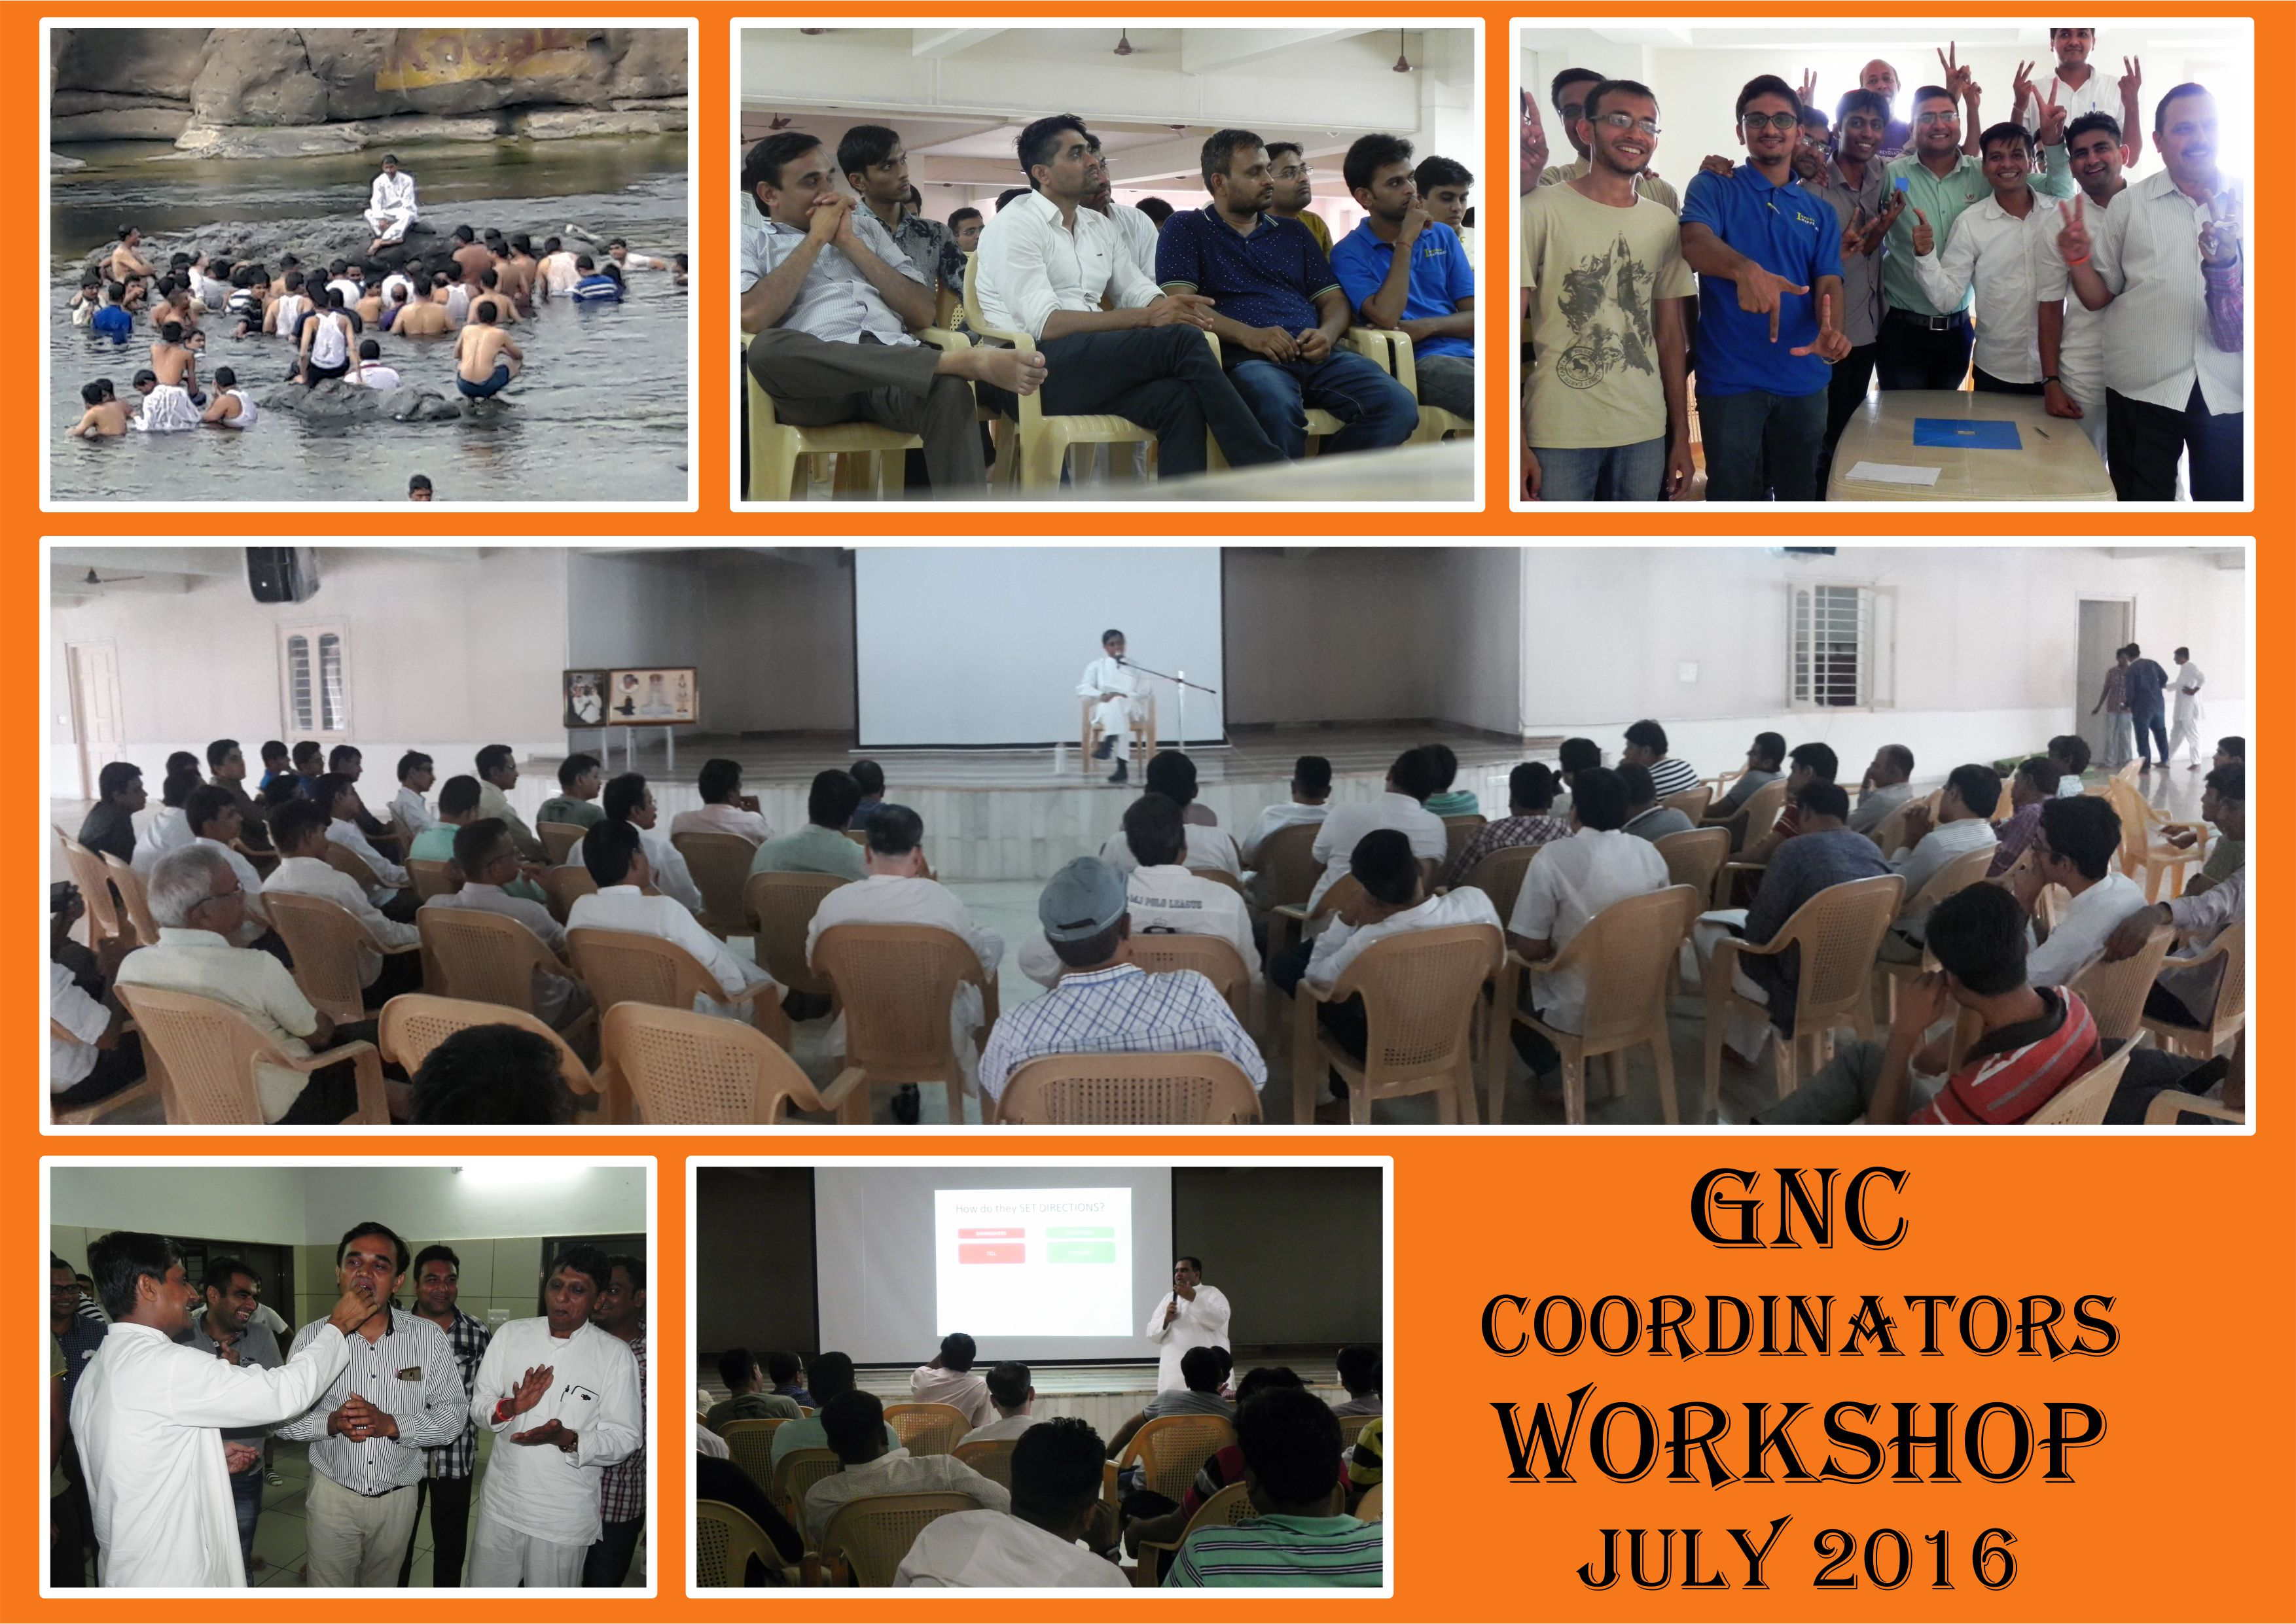 GNC Coordinators Workshop July 2016